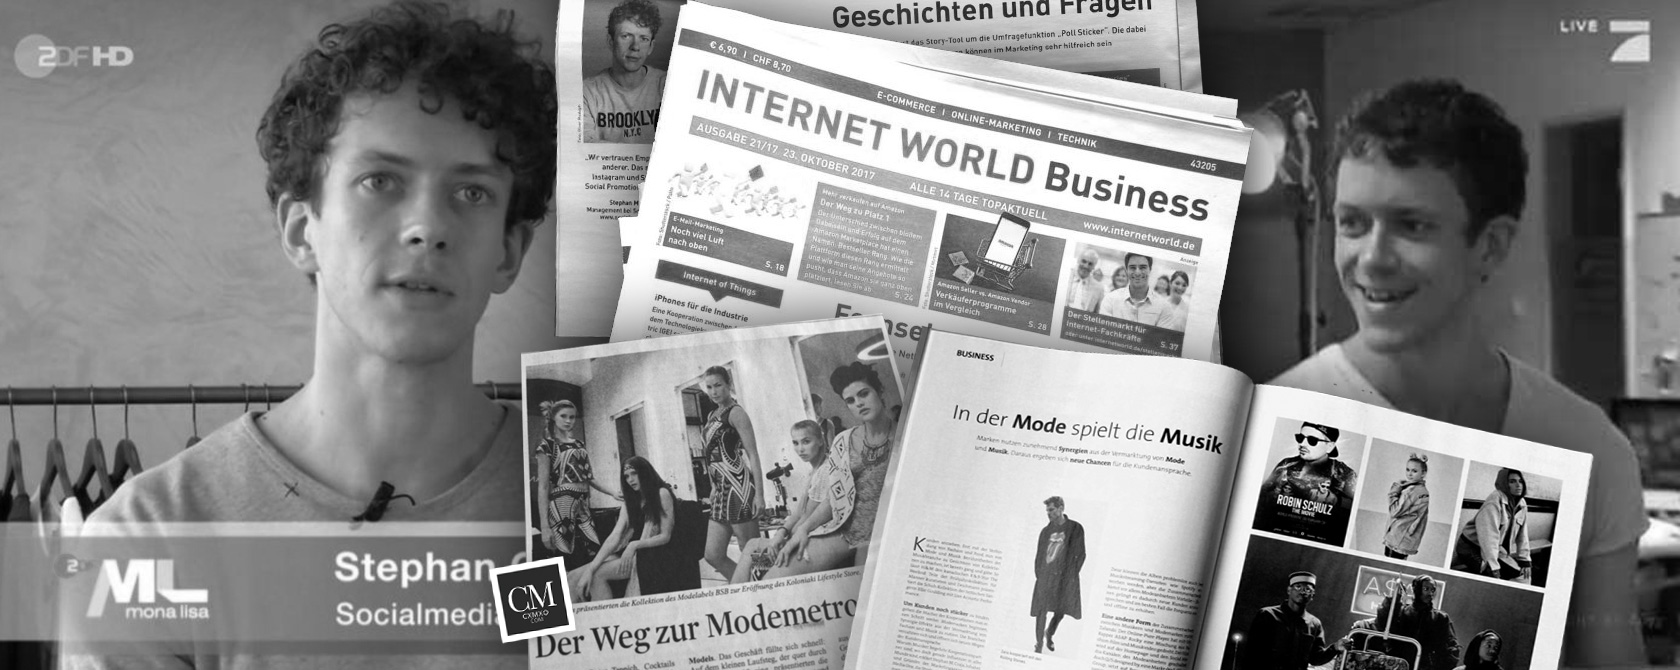 Experte in TV, Zeitung und als Speaker auf Events: Social Media Marketing mit Stephan Czaja